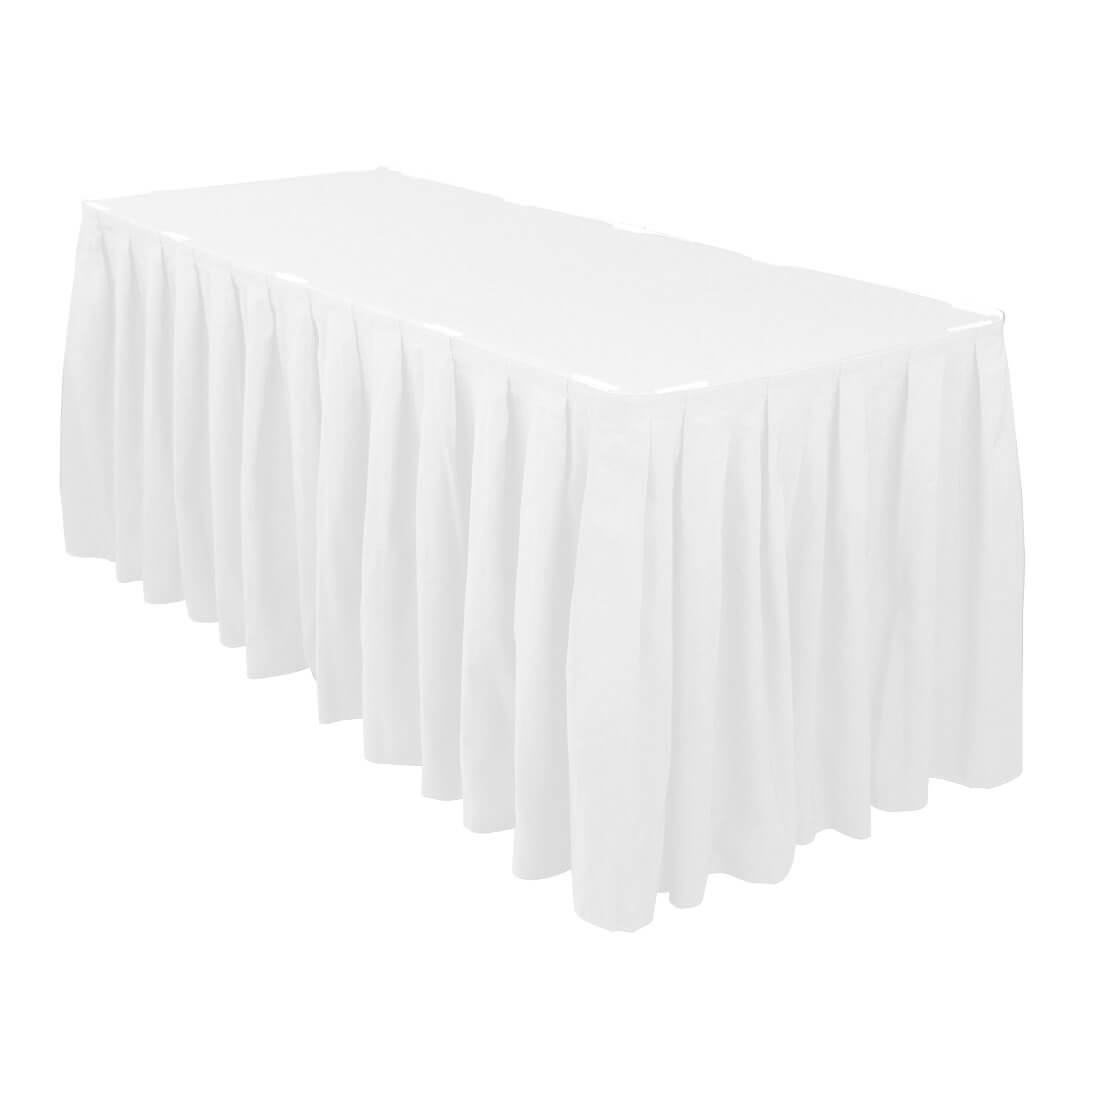 Banquet Table Skirt Rental in Winfield